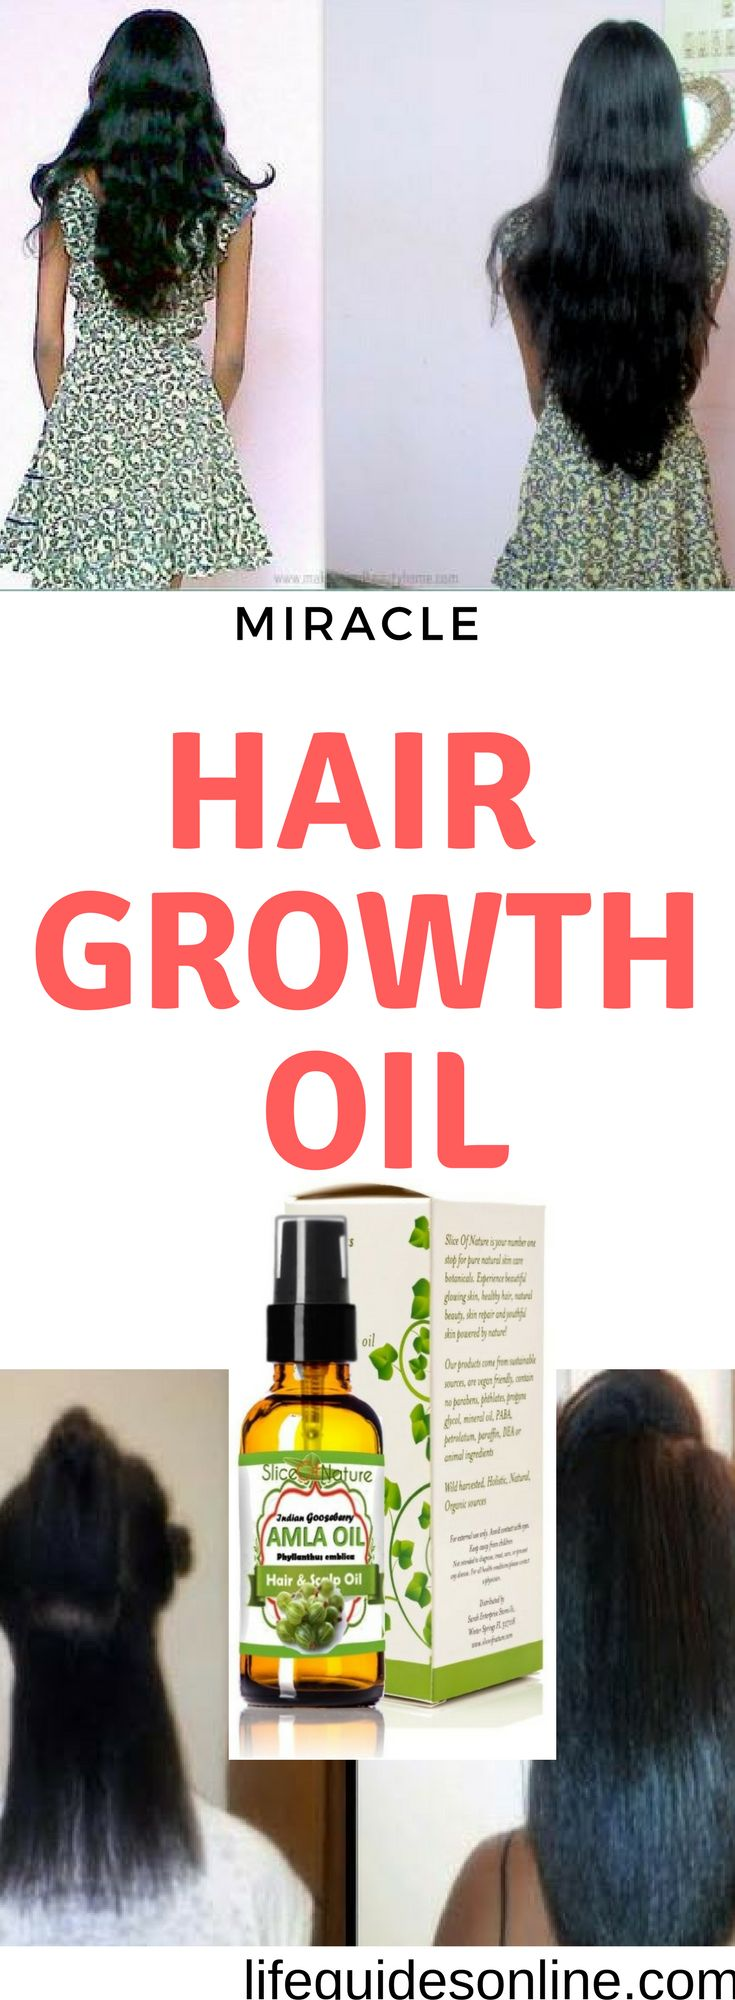 Extreme hair growth.Howi grow my hair super long, less than a month. miracle hair growth oil. you have to try. amazing hair , long hair